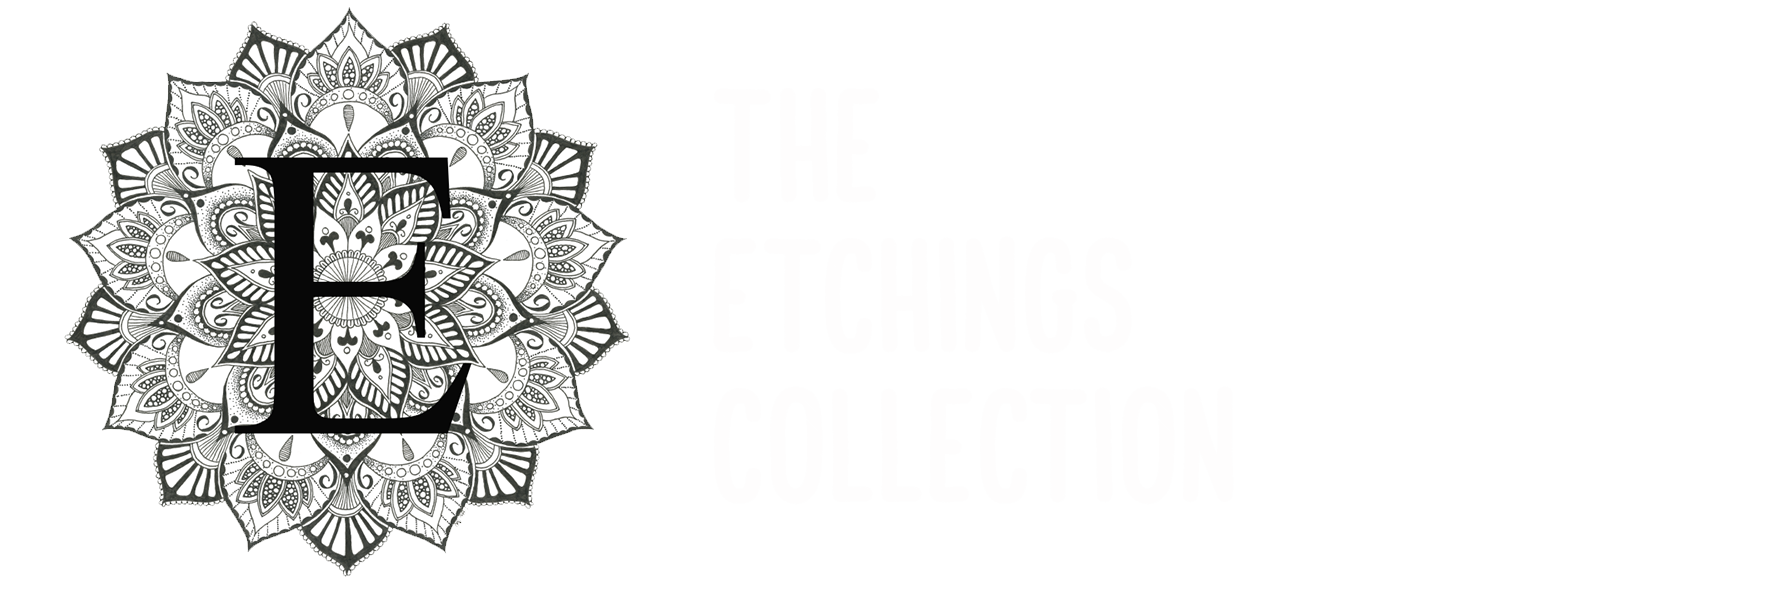 The Etchings Collection